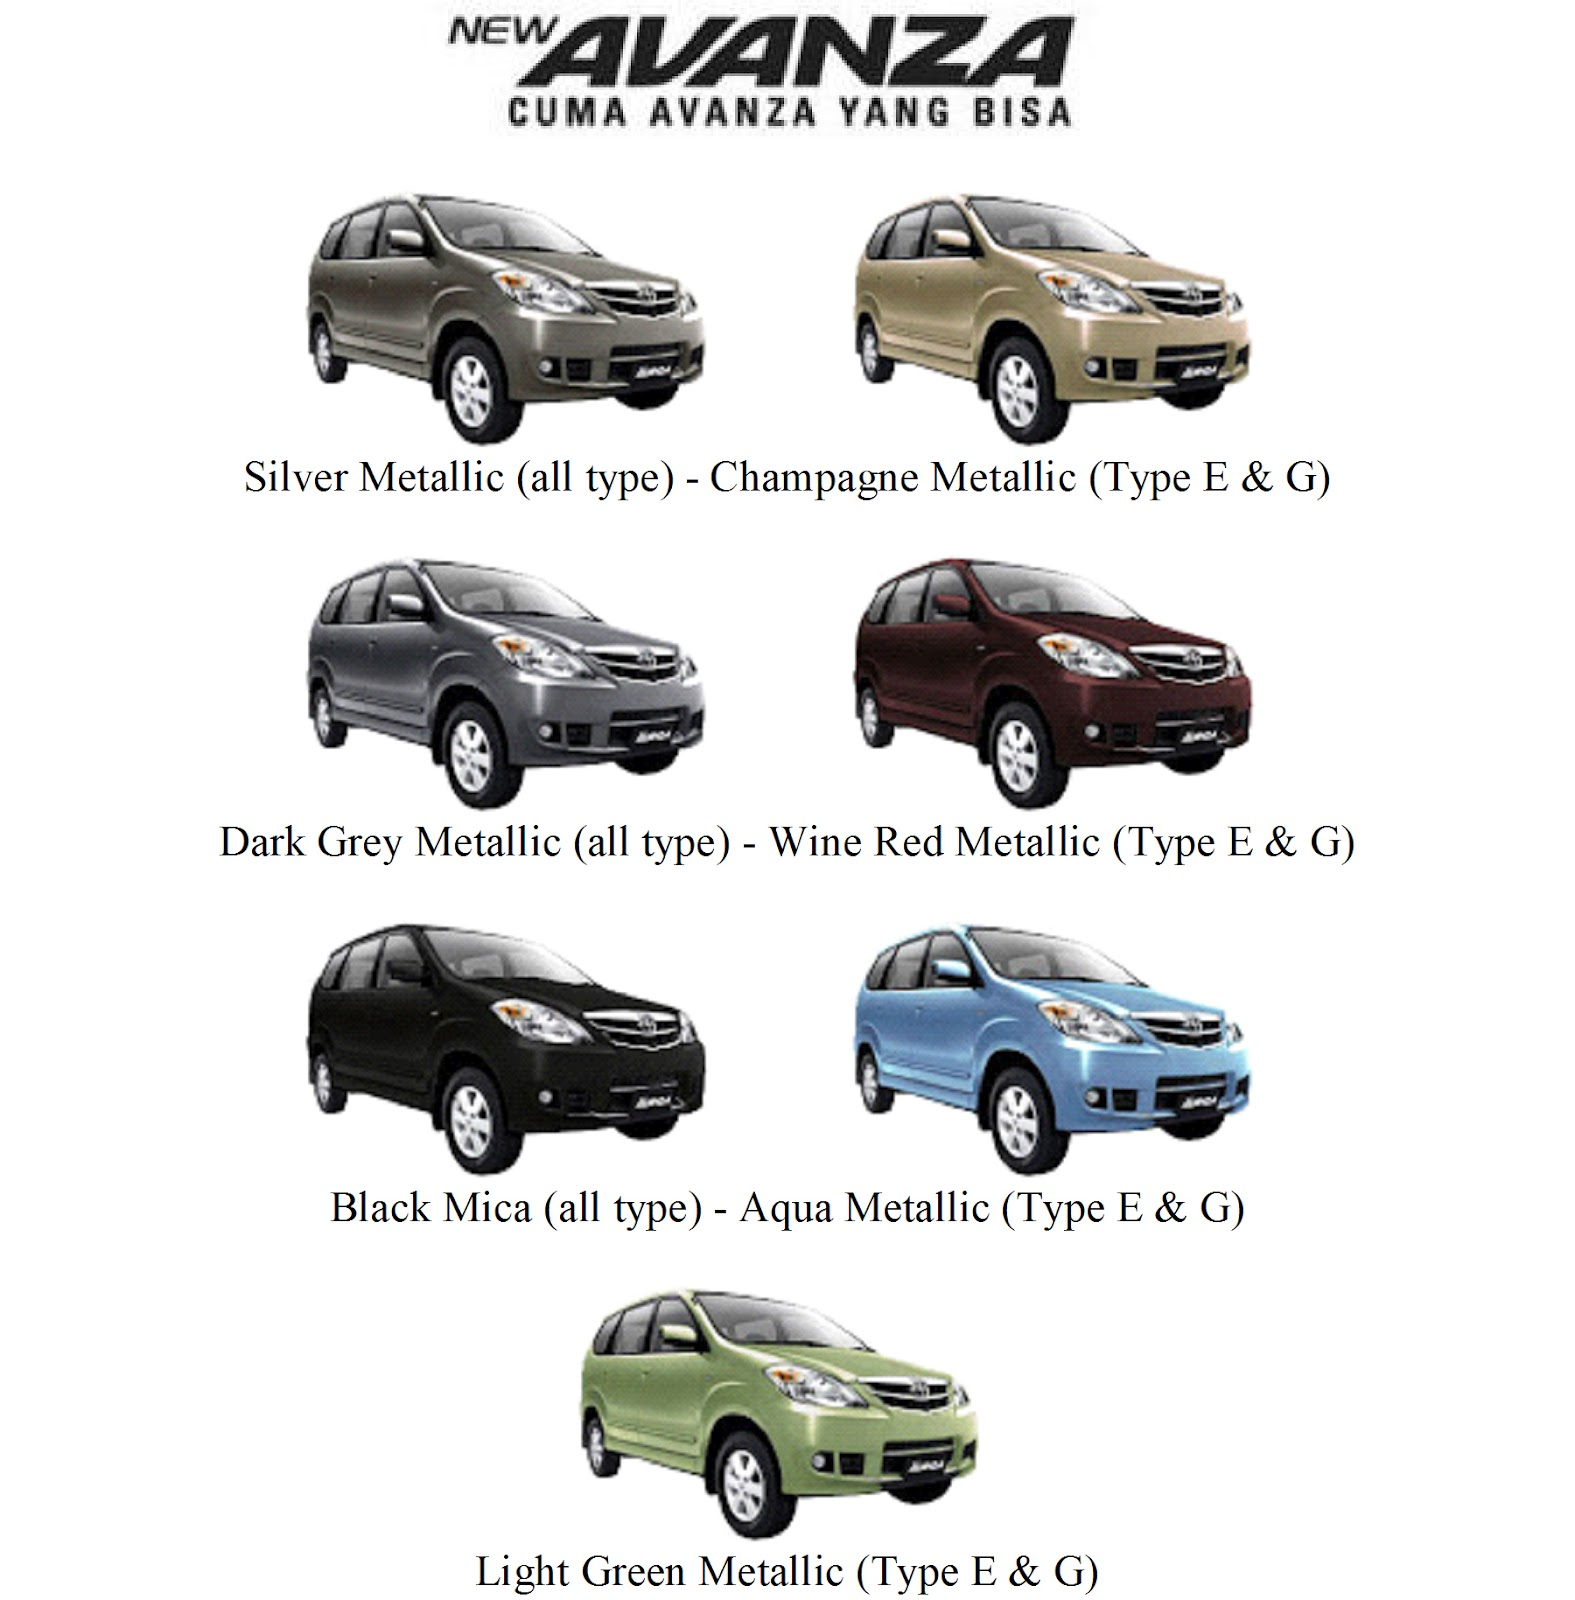 harga toyota grand new avanza 2016 putih baru 2015 all veloz